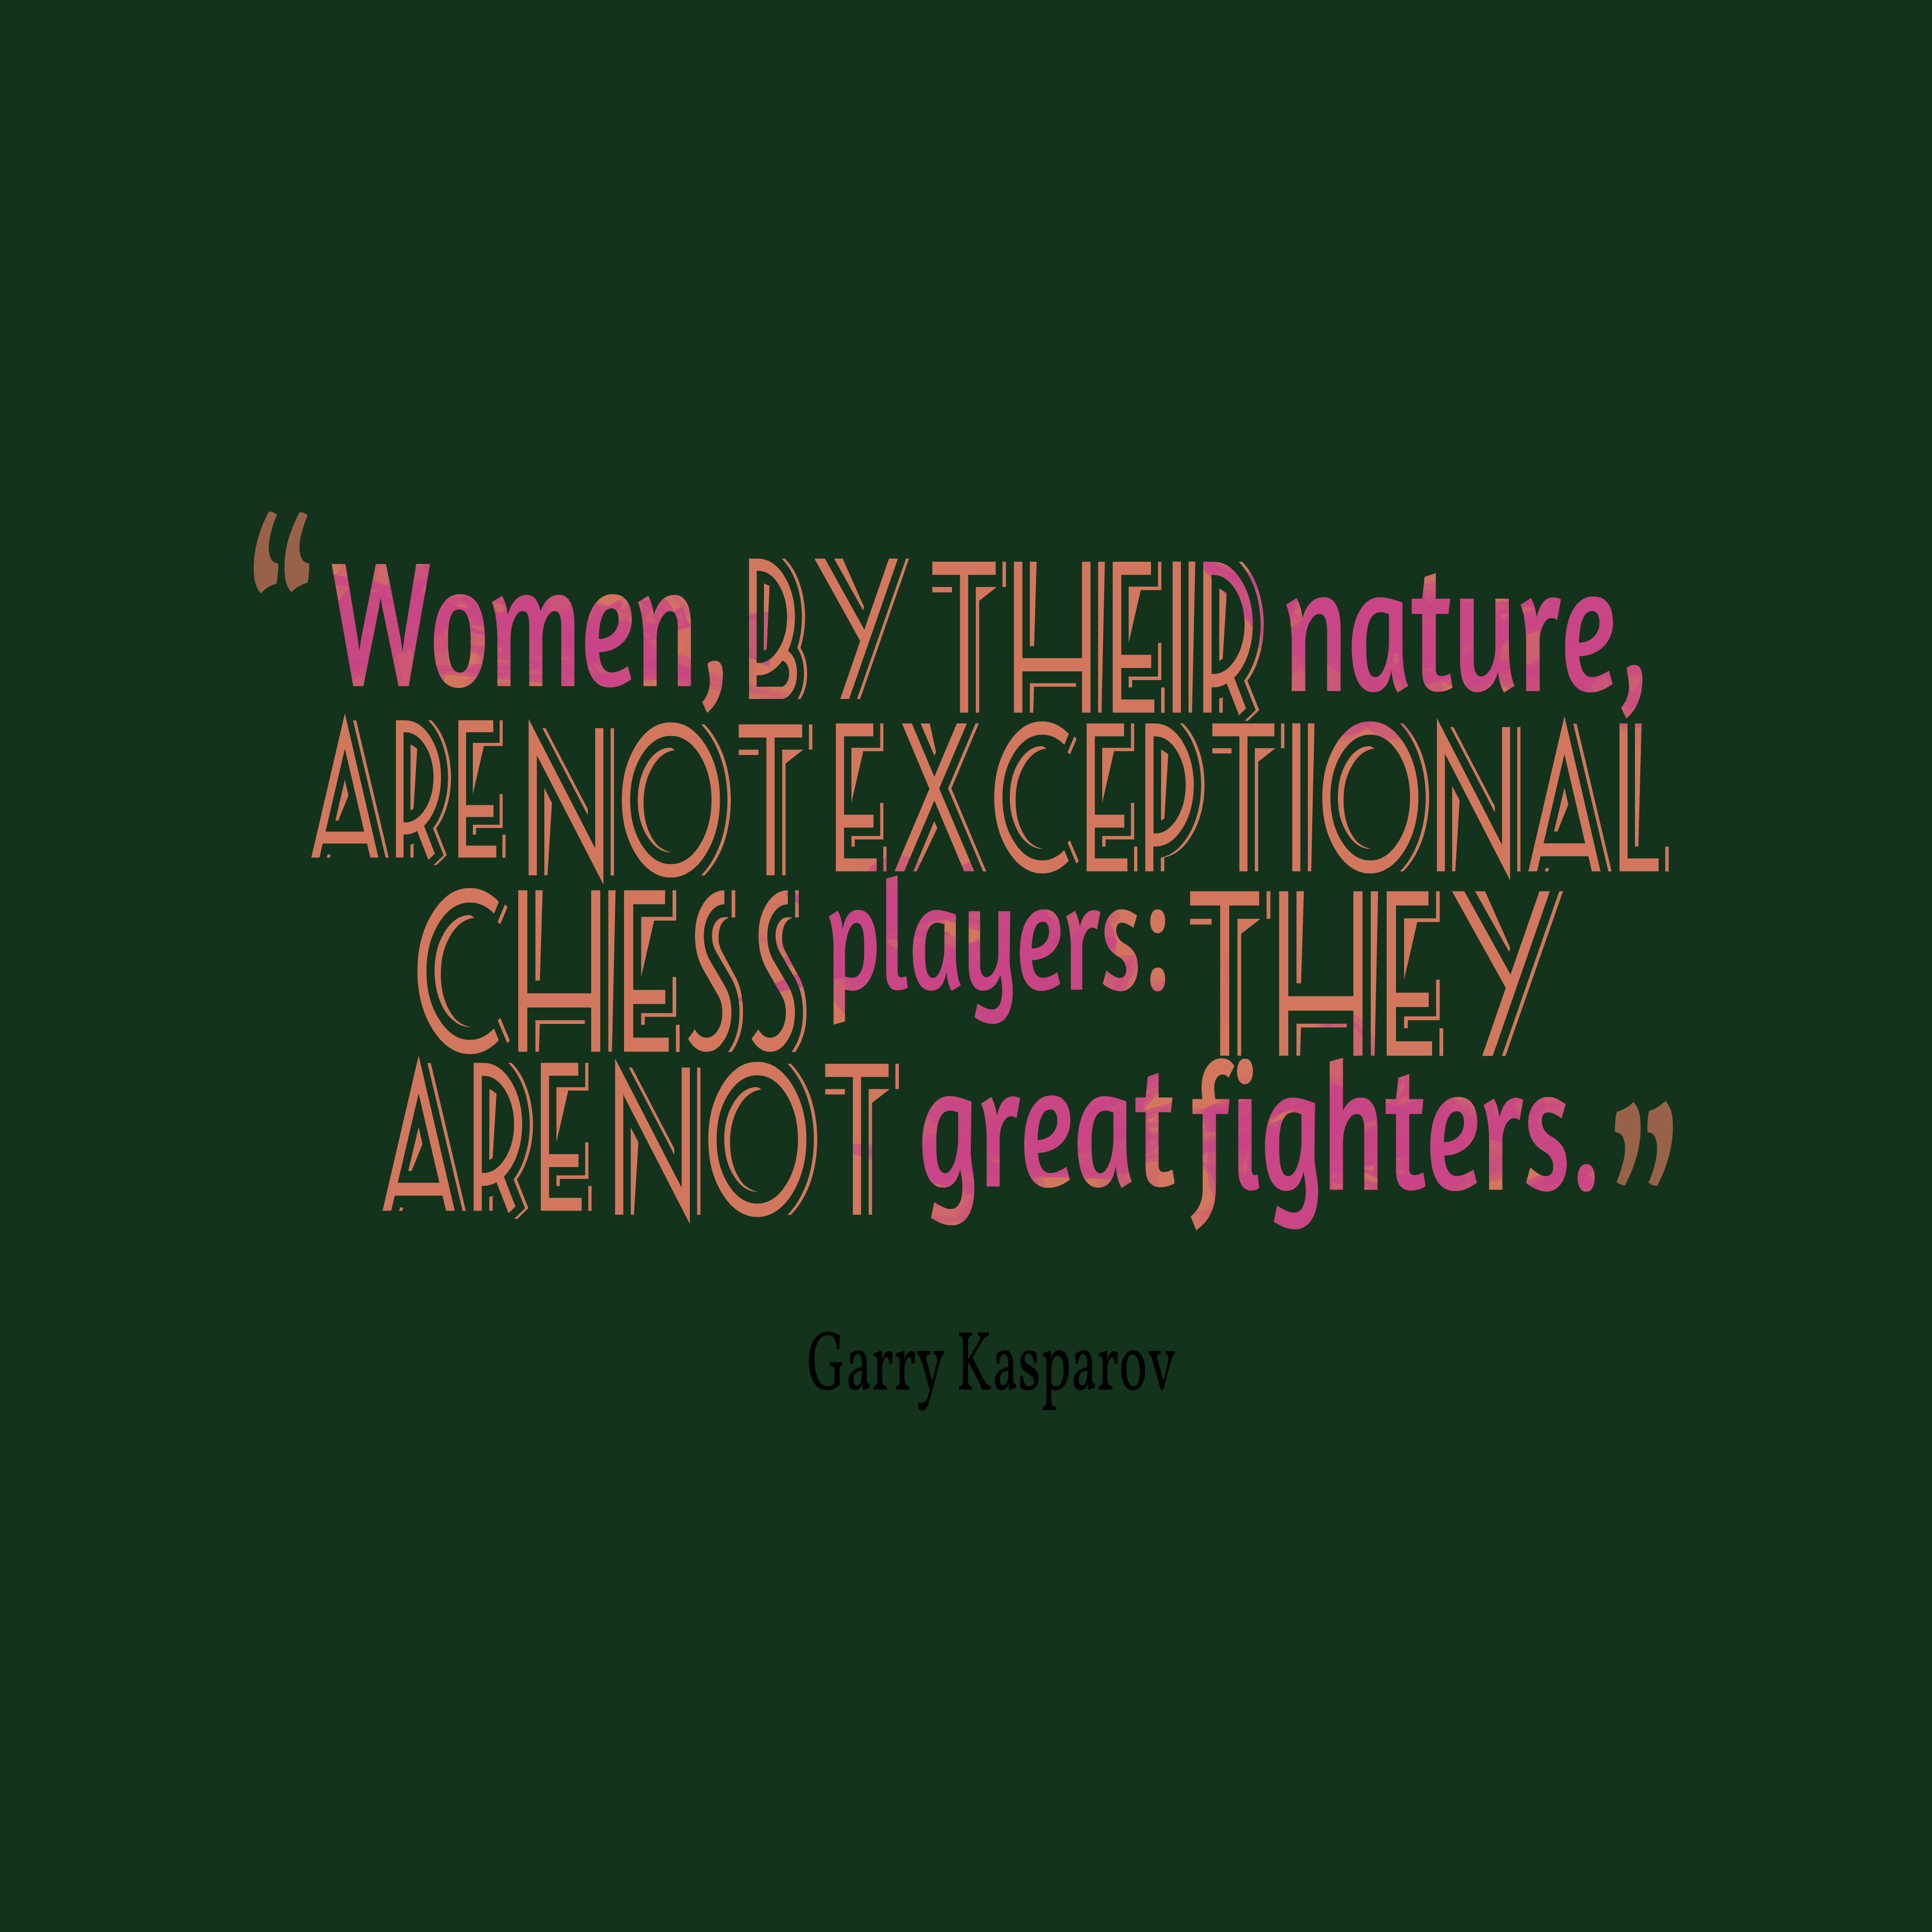 Quotes image of Women, by their nature, are not exceptional chess players: they are not great fighters.